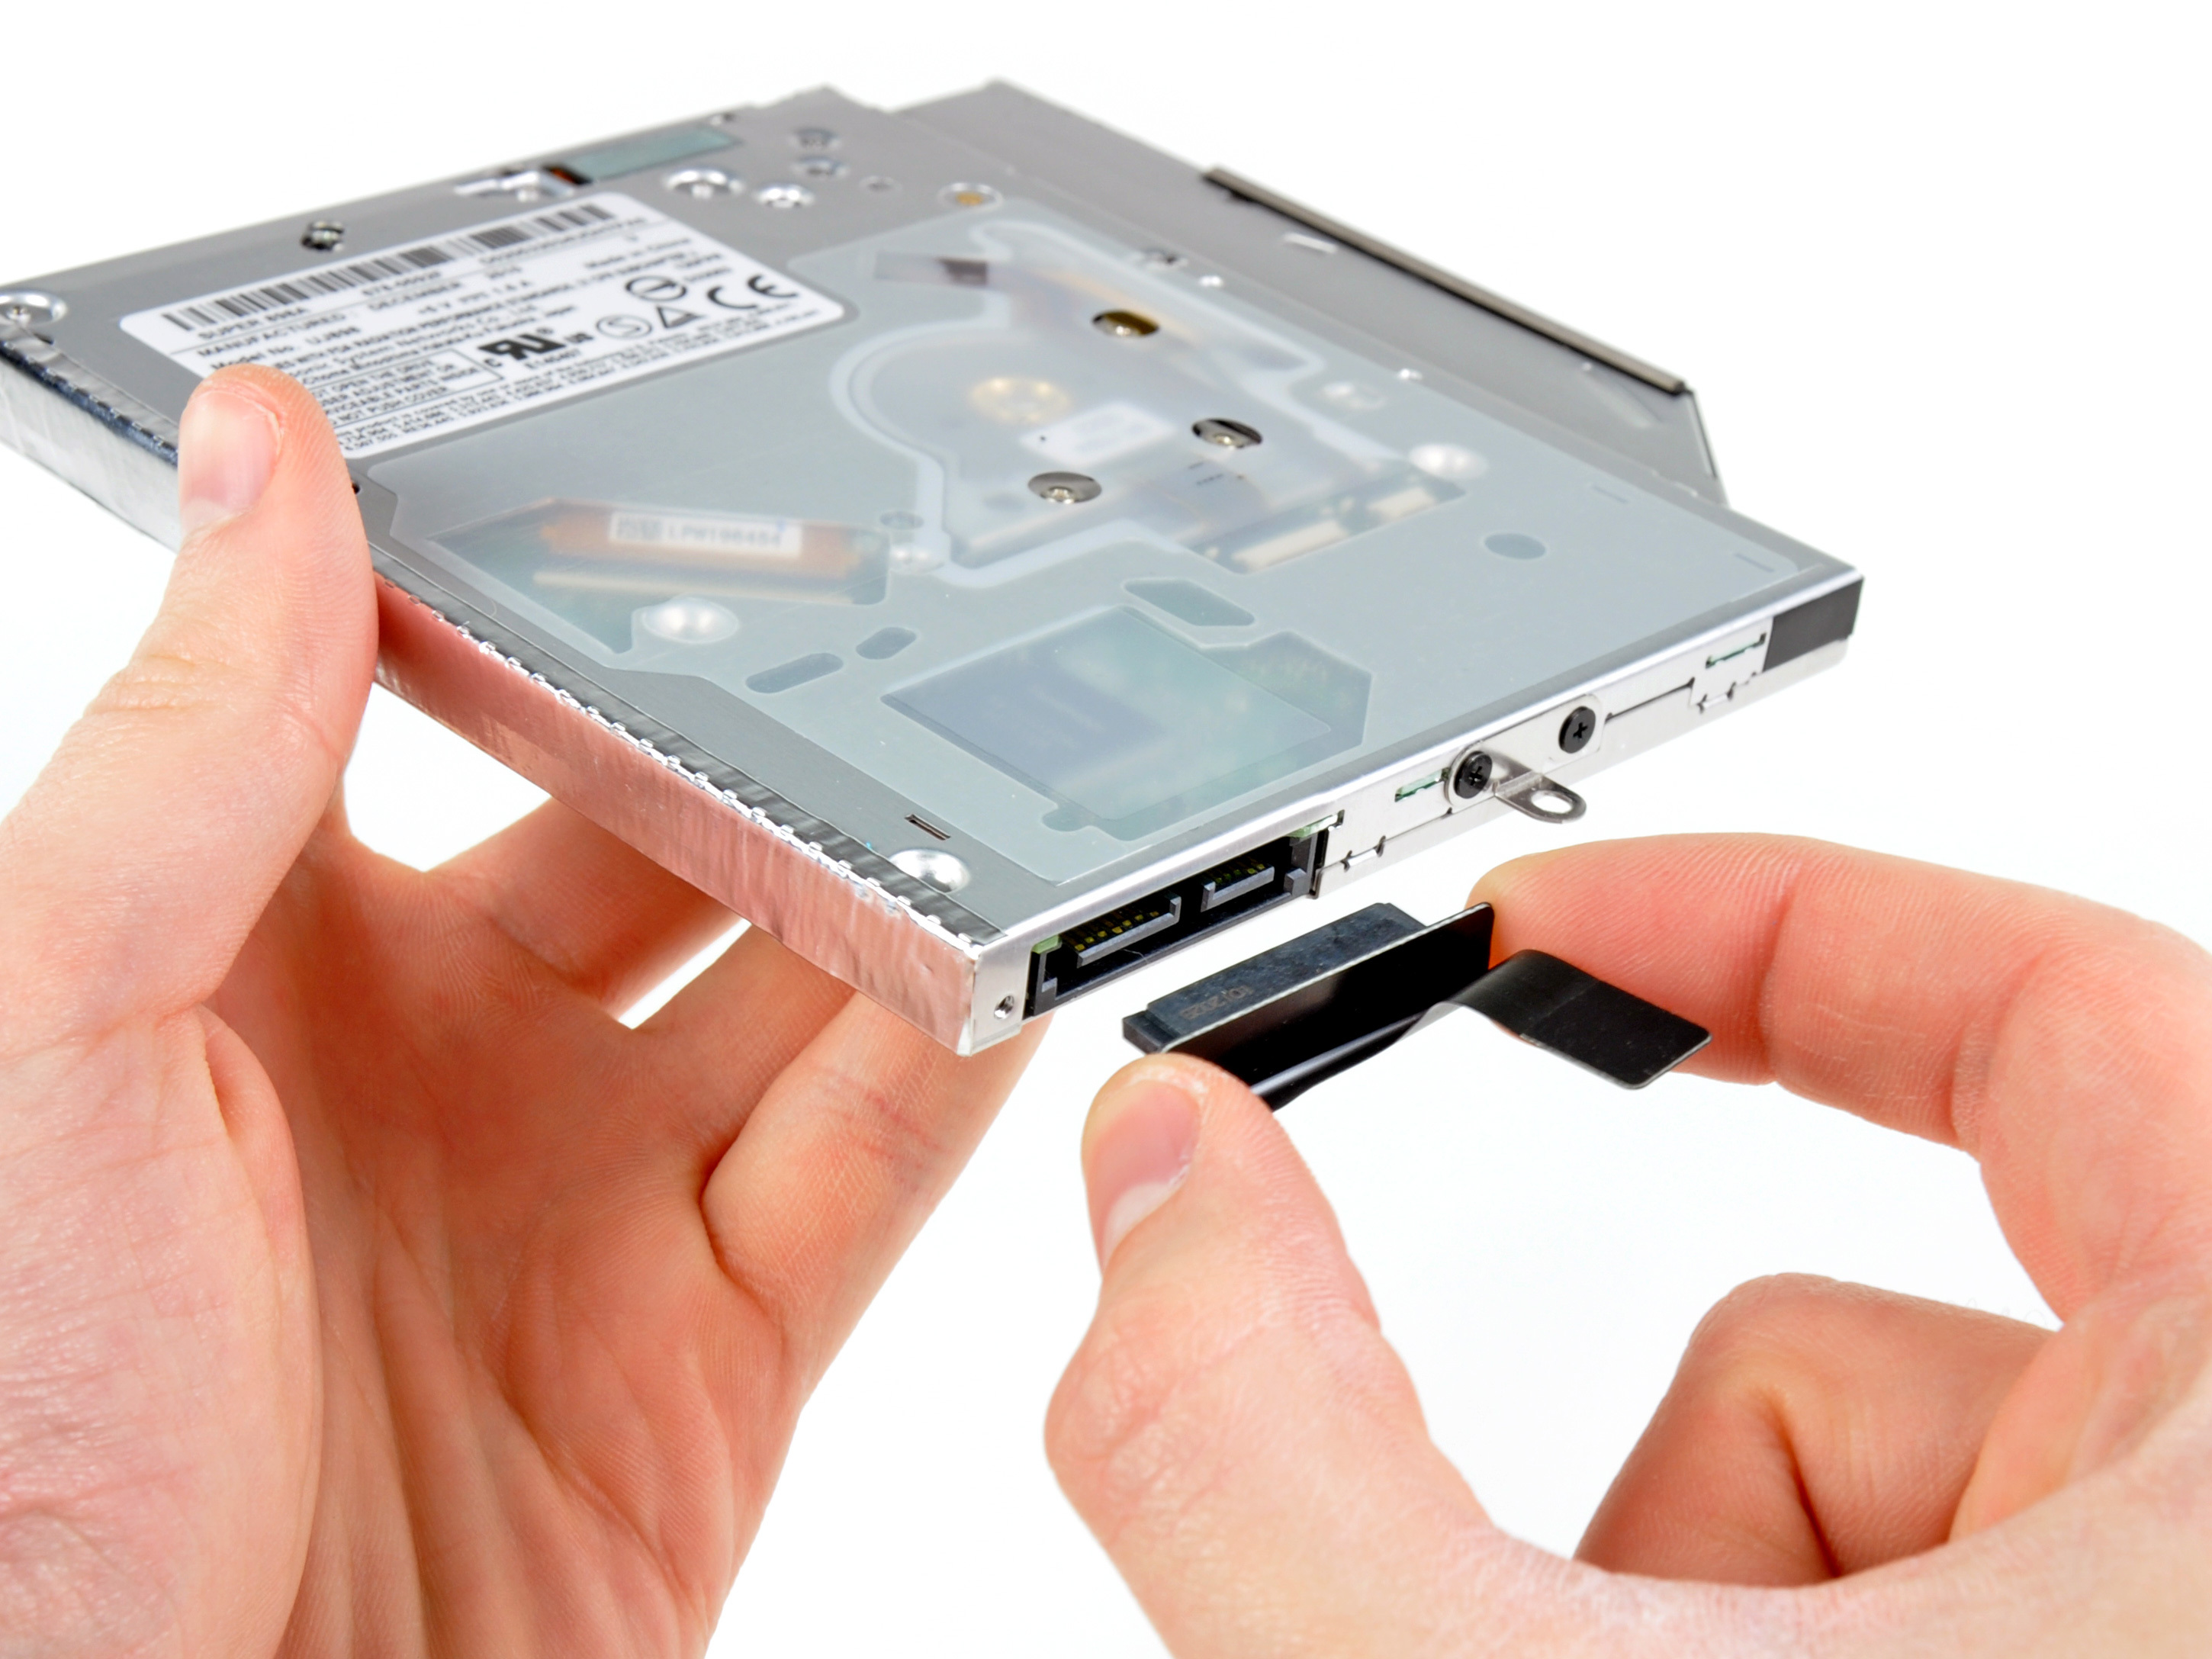 Macbook Pro 13 Quot Unibody Early 2011 Optical Drive